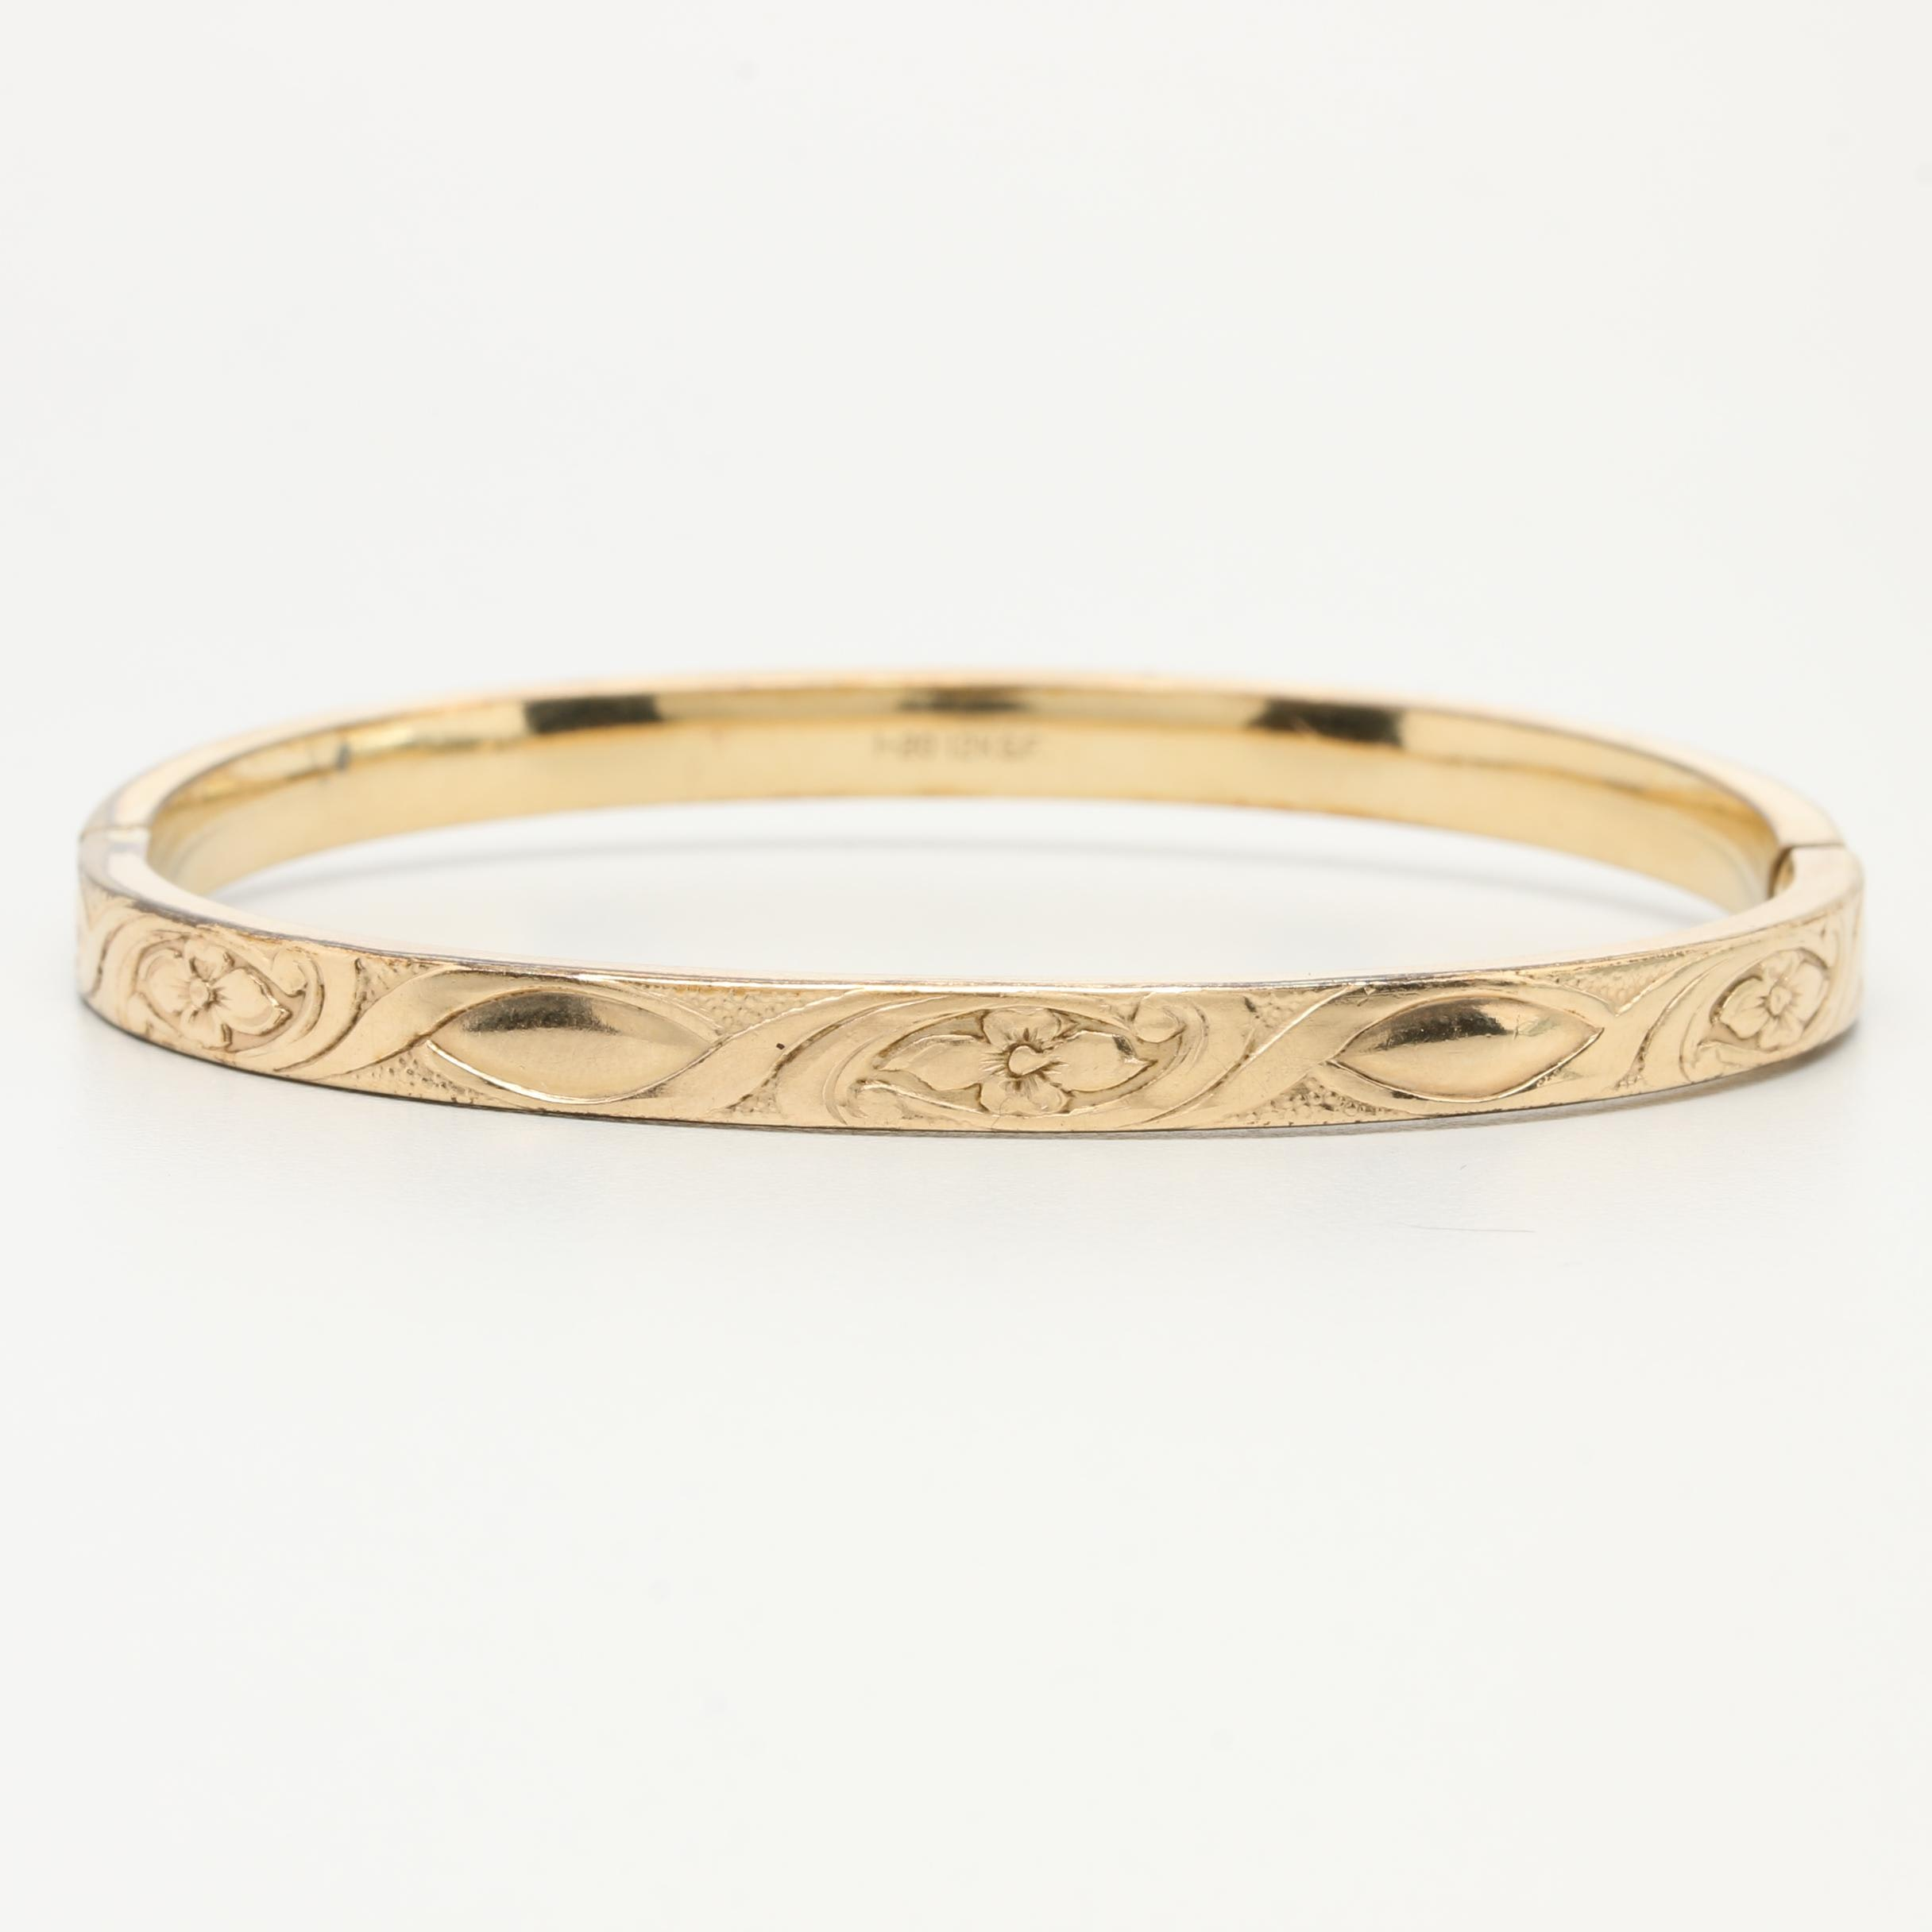 Burt Cassell 12K Gold Filled Bangle Bracelet